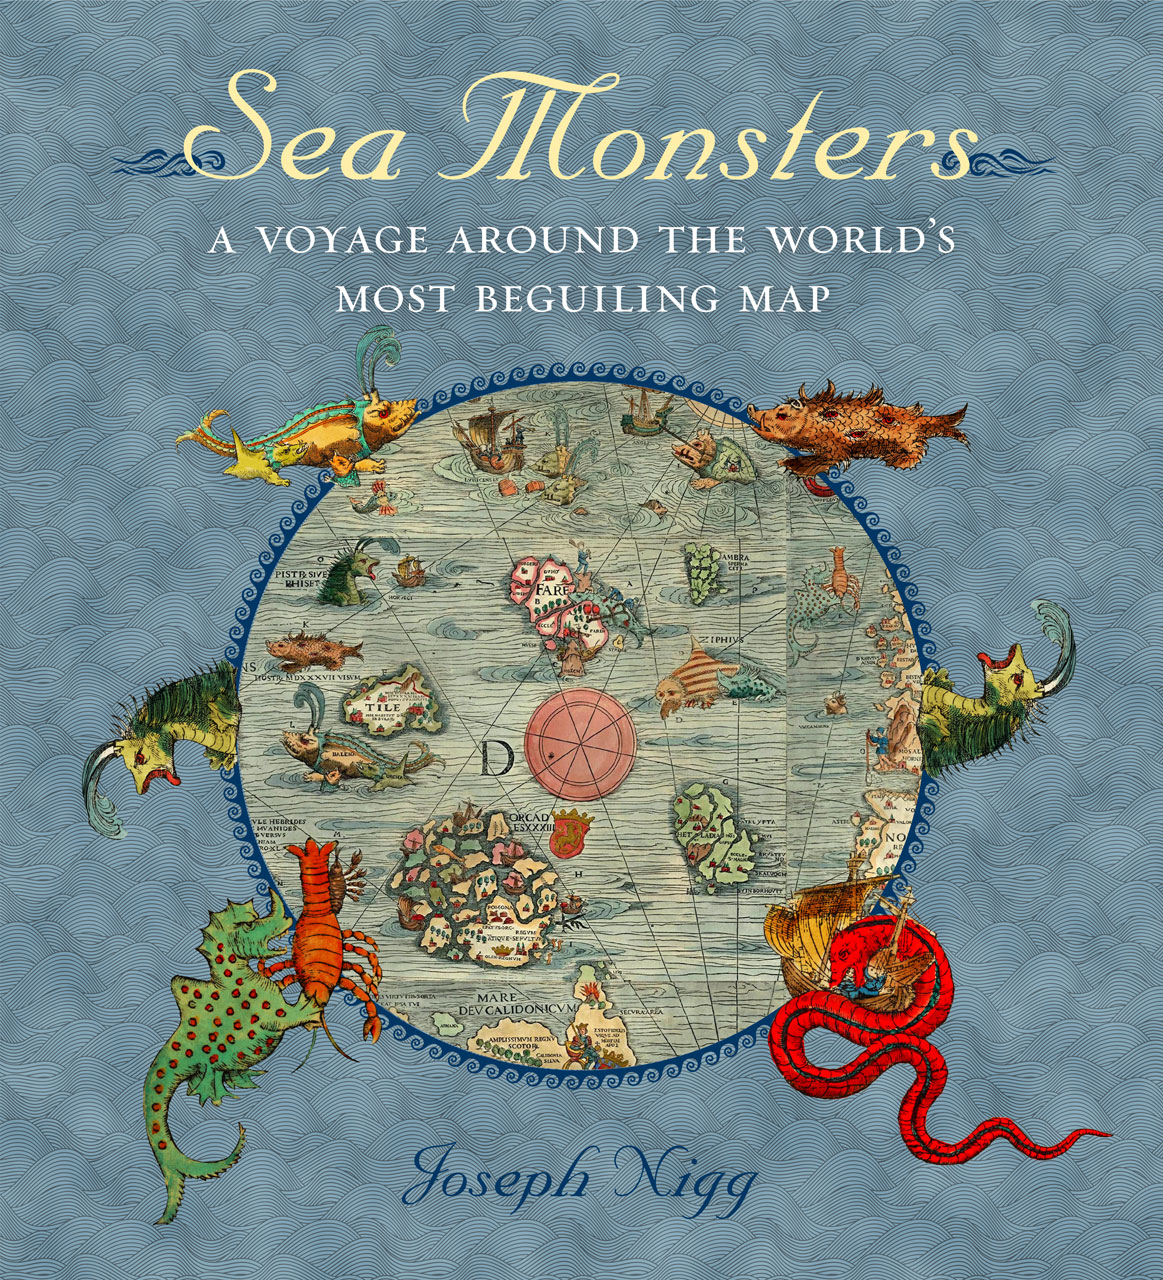 Sea monsters a voyage around the worlds most beguiling map nigg joseph nigg gumiabroncs Images